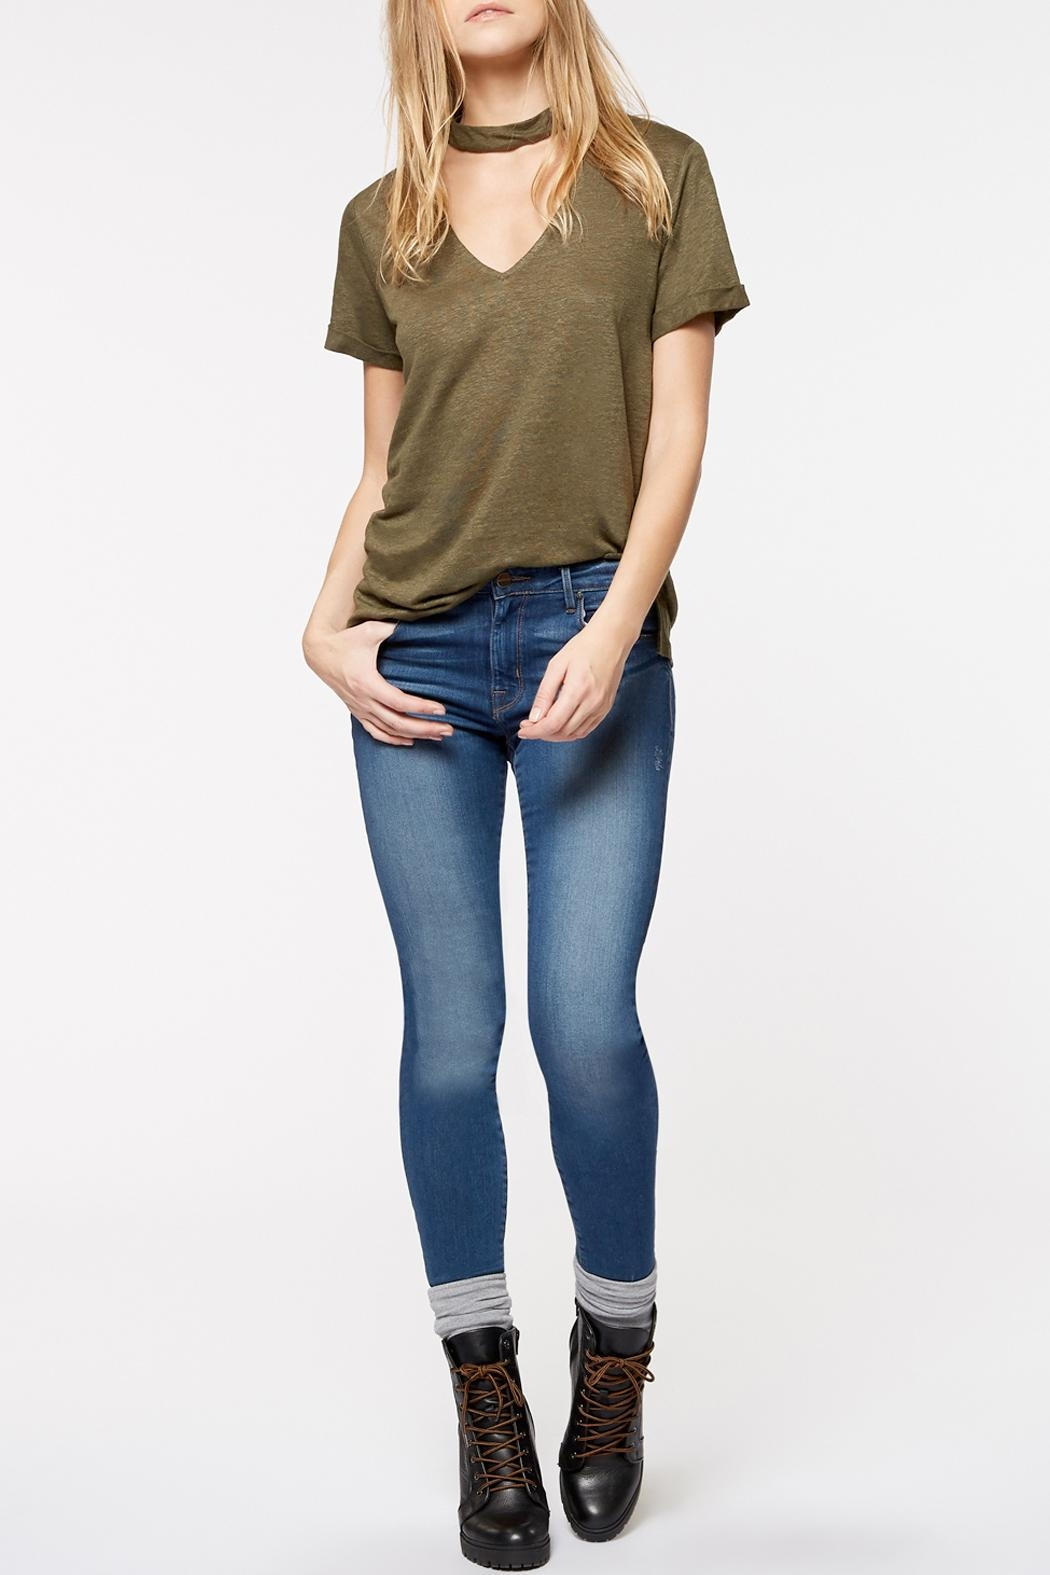 Sanctuary Joanna Choker Tee - Side Cropped Image